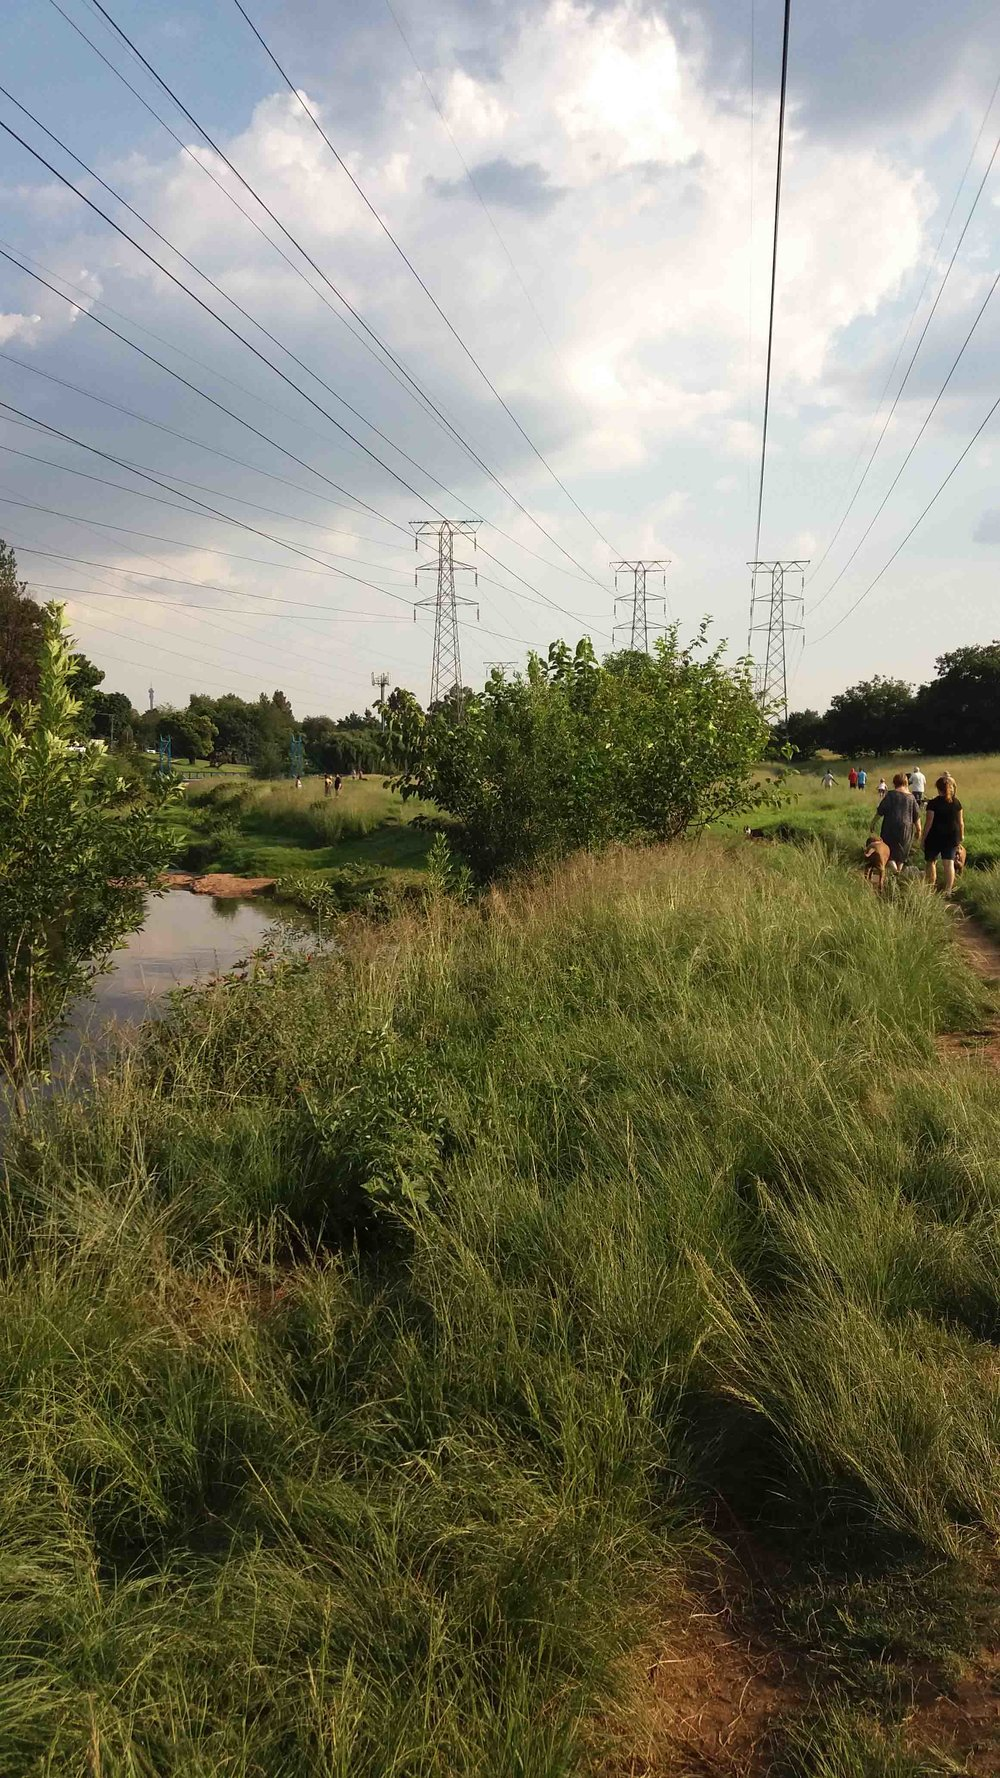 Walkway along Braamfontein Spruit in Green Belt underneath Pylons